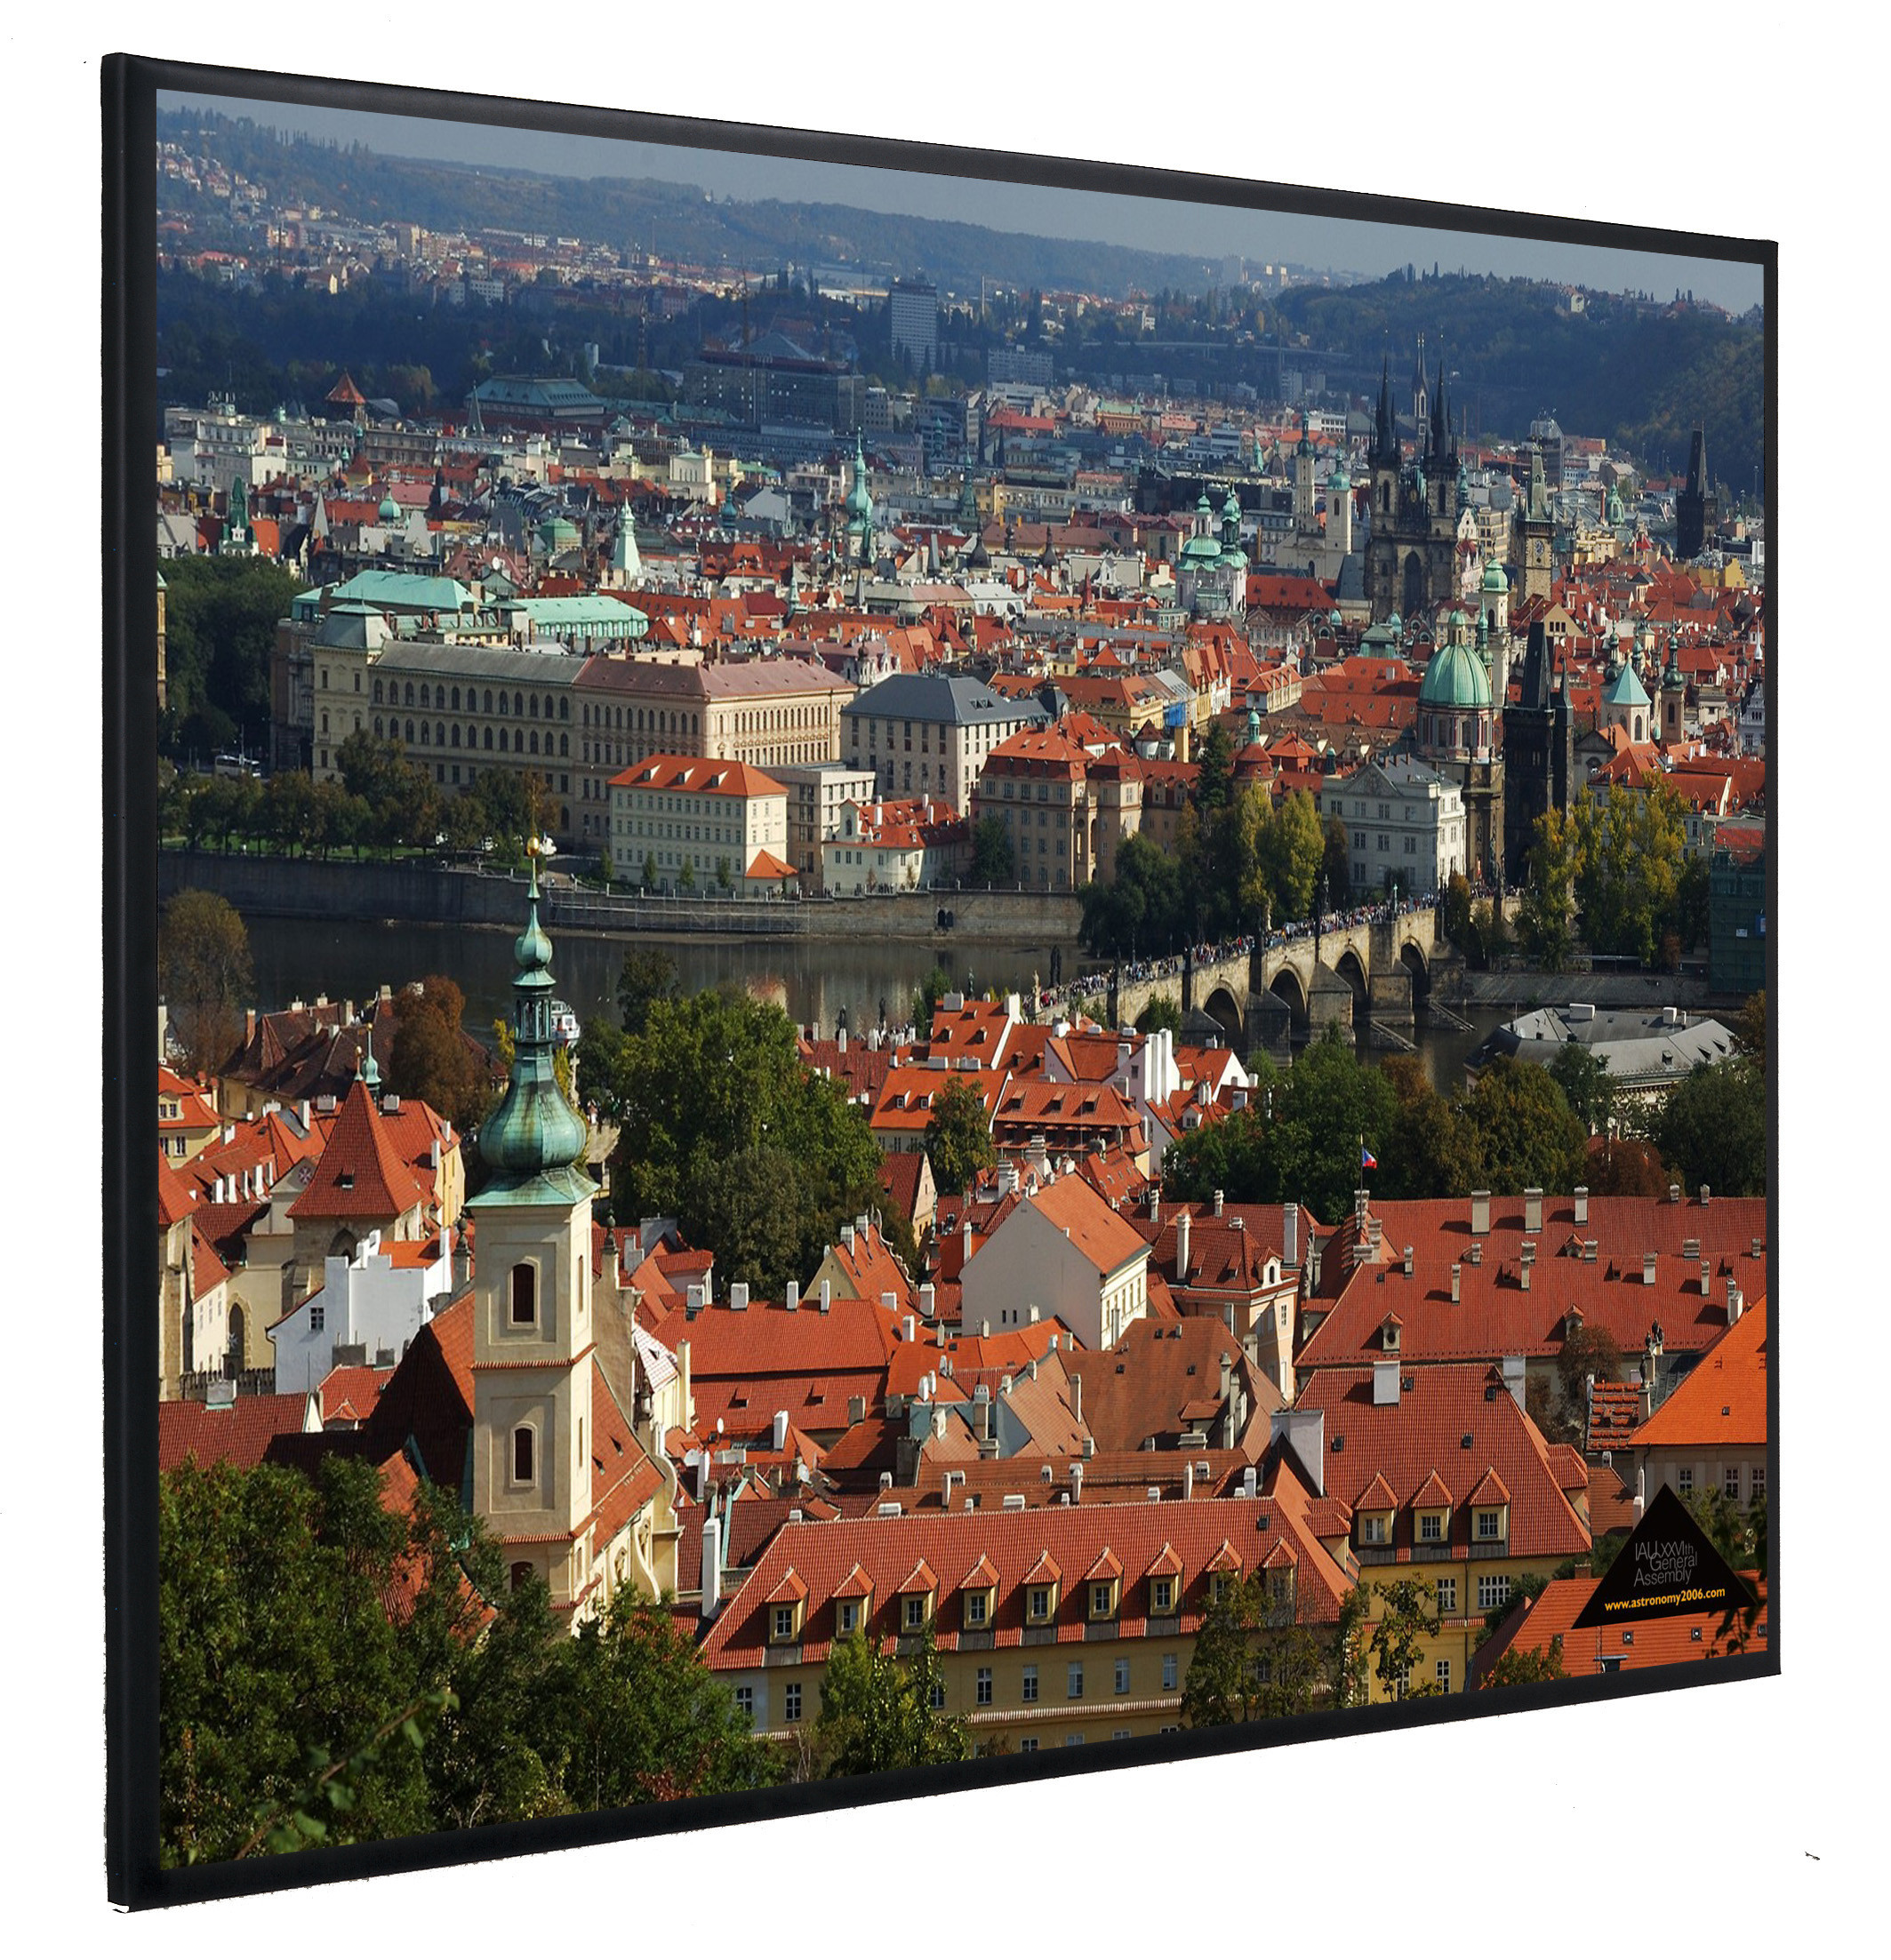 Vision Light 200 x 150 cm video format og Veltex ramme